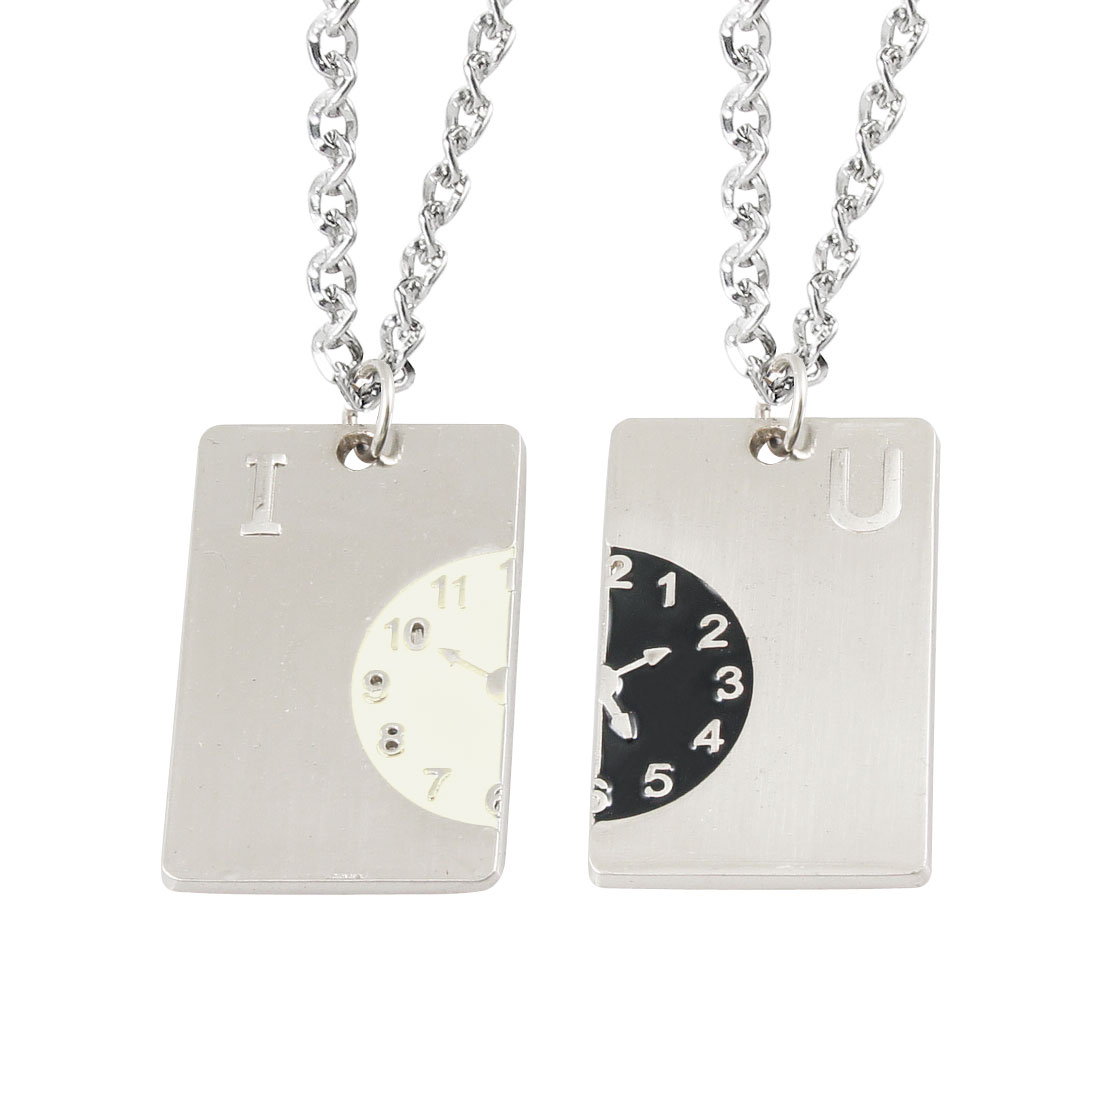 Couple Rectangle Clock Pendant Siver Tone Lobster Clasp Necklaces Pair